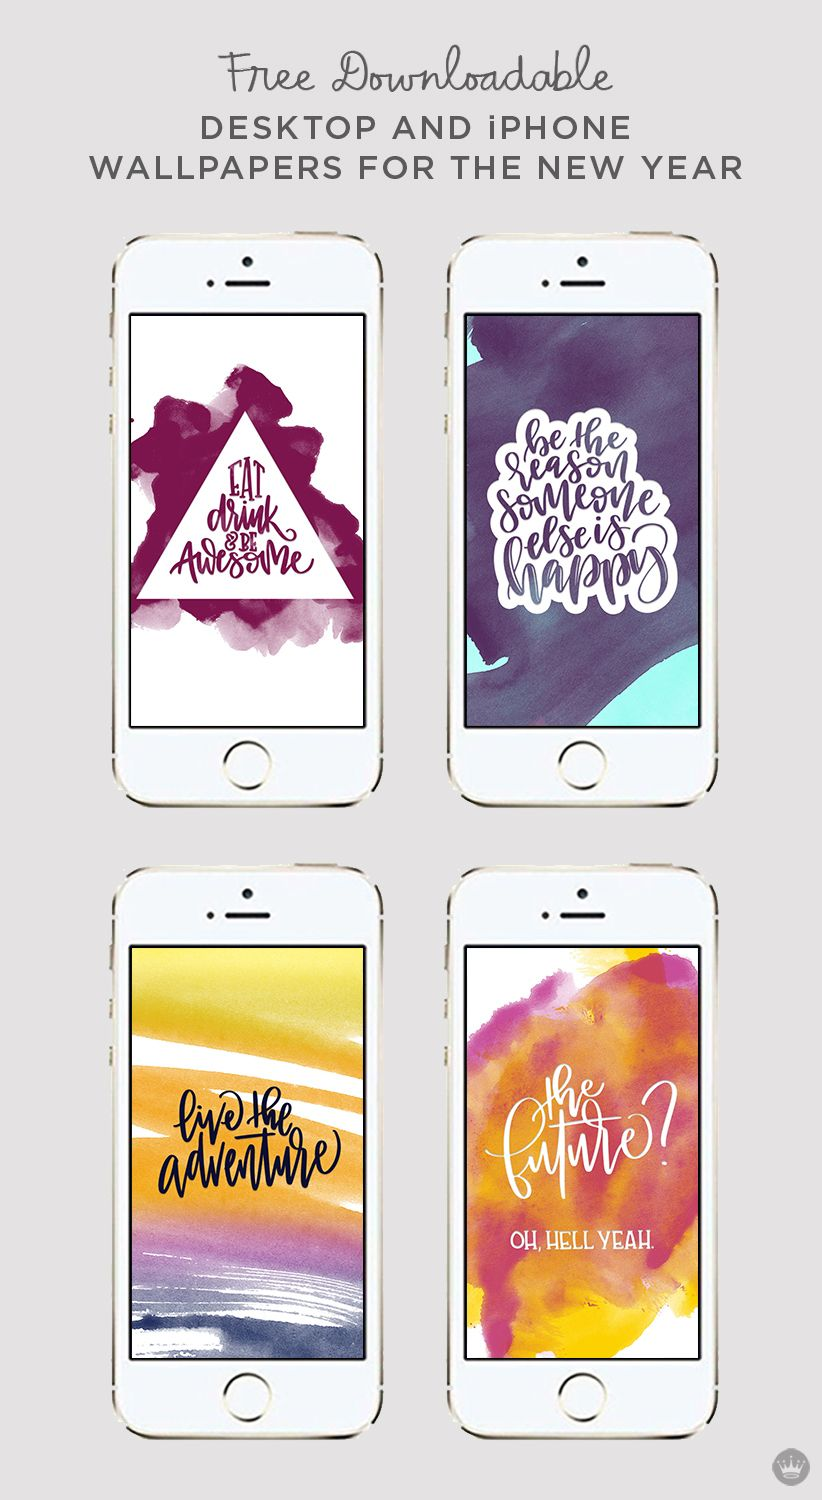 get 2017 off to a strong start with inspiring digital wallpapers by hallmarker kelsey dejesus from the creative studios at hallmark